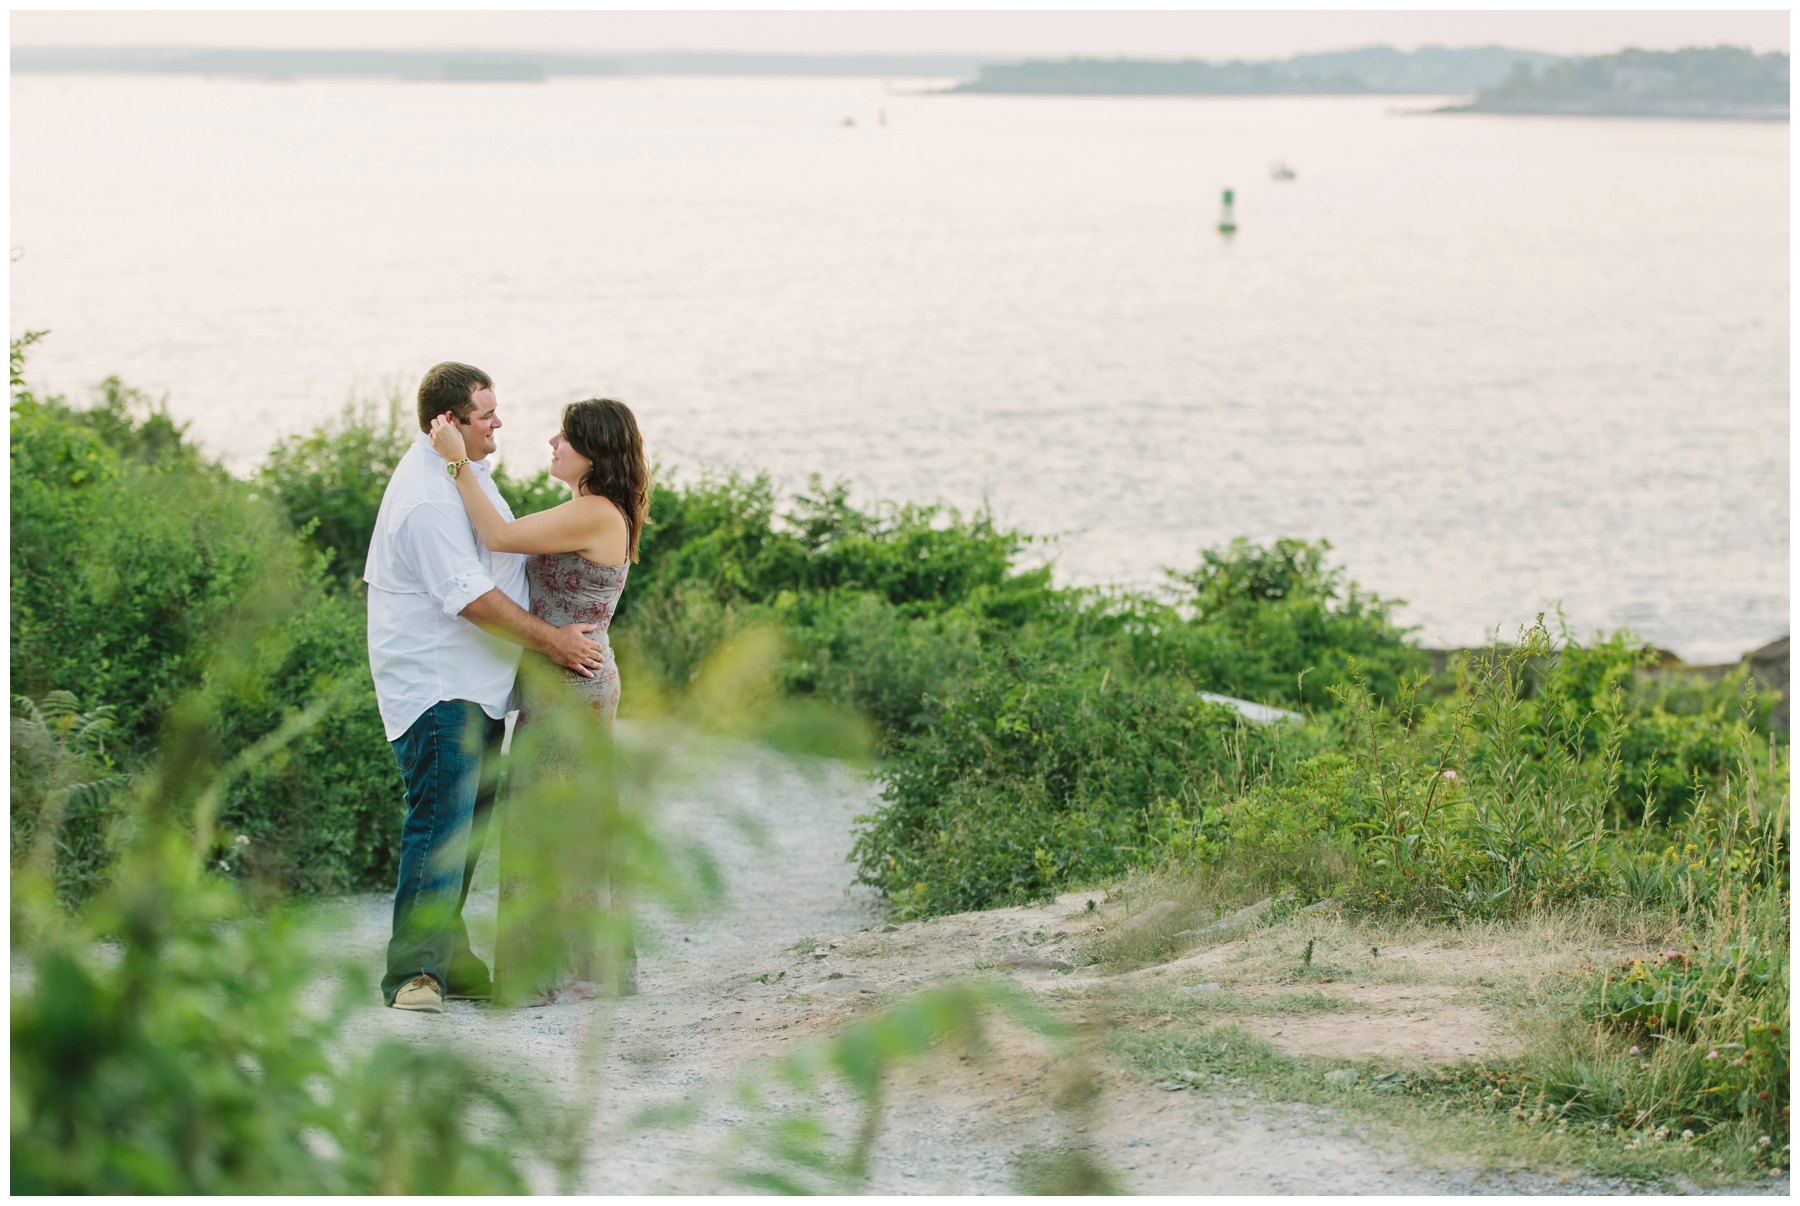 Maine_Photographer_Engagements_FortWilliams_PortlandHeadLight_lighthouse_coastal_seaside-014